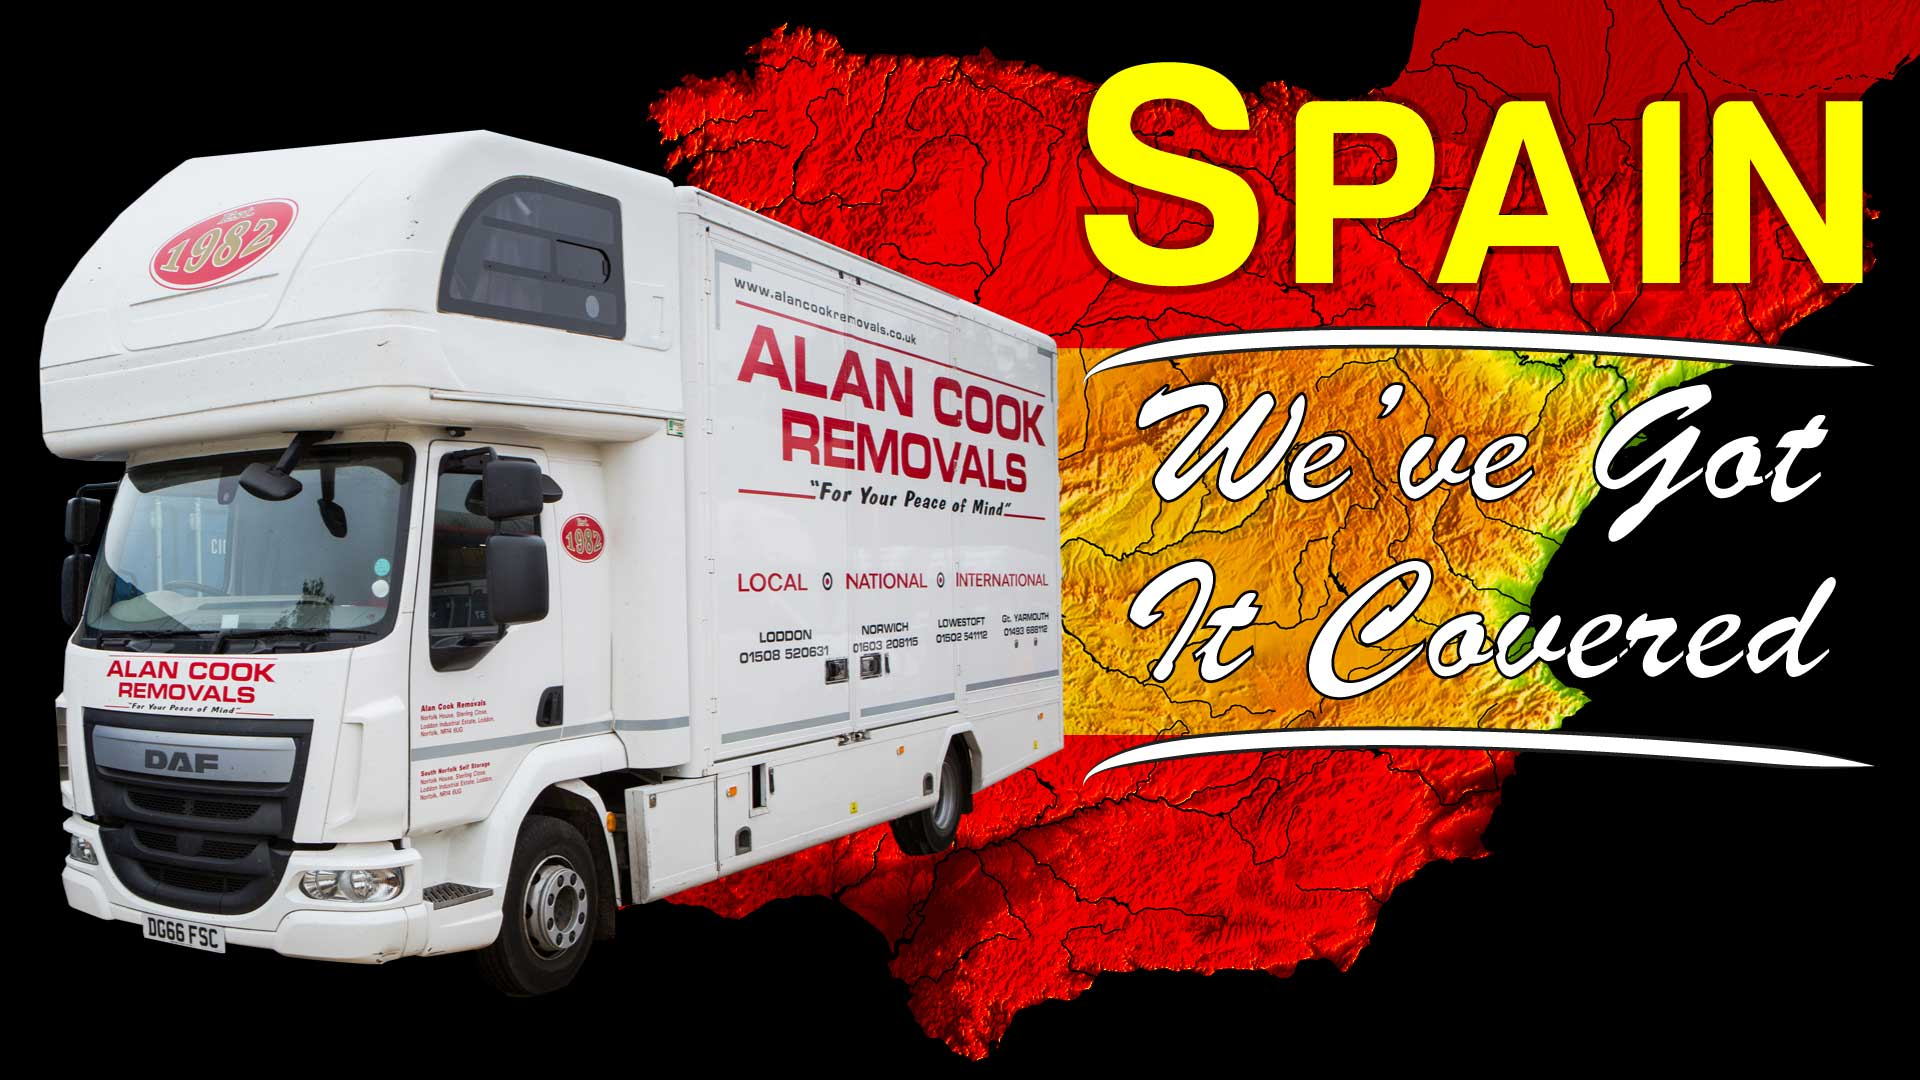 Spain - Alan Cook Removals - Of all the Norwich Removals Companies we pride ourselves in offering the most prfessional, 